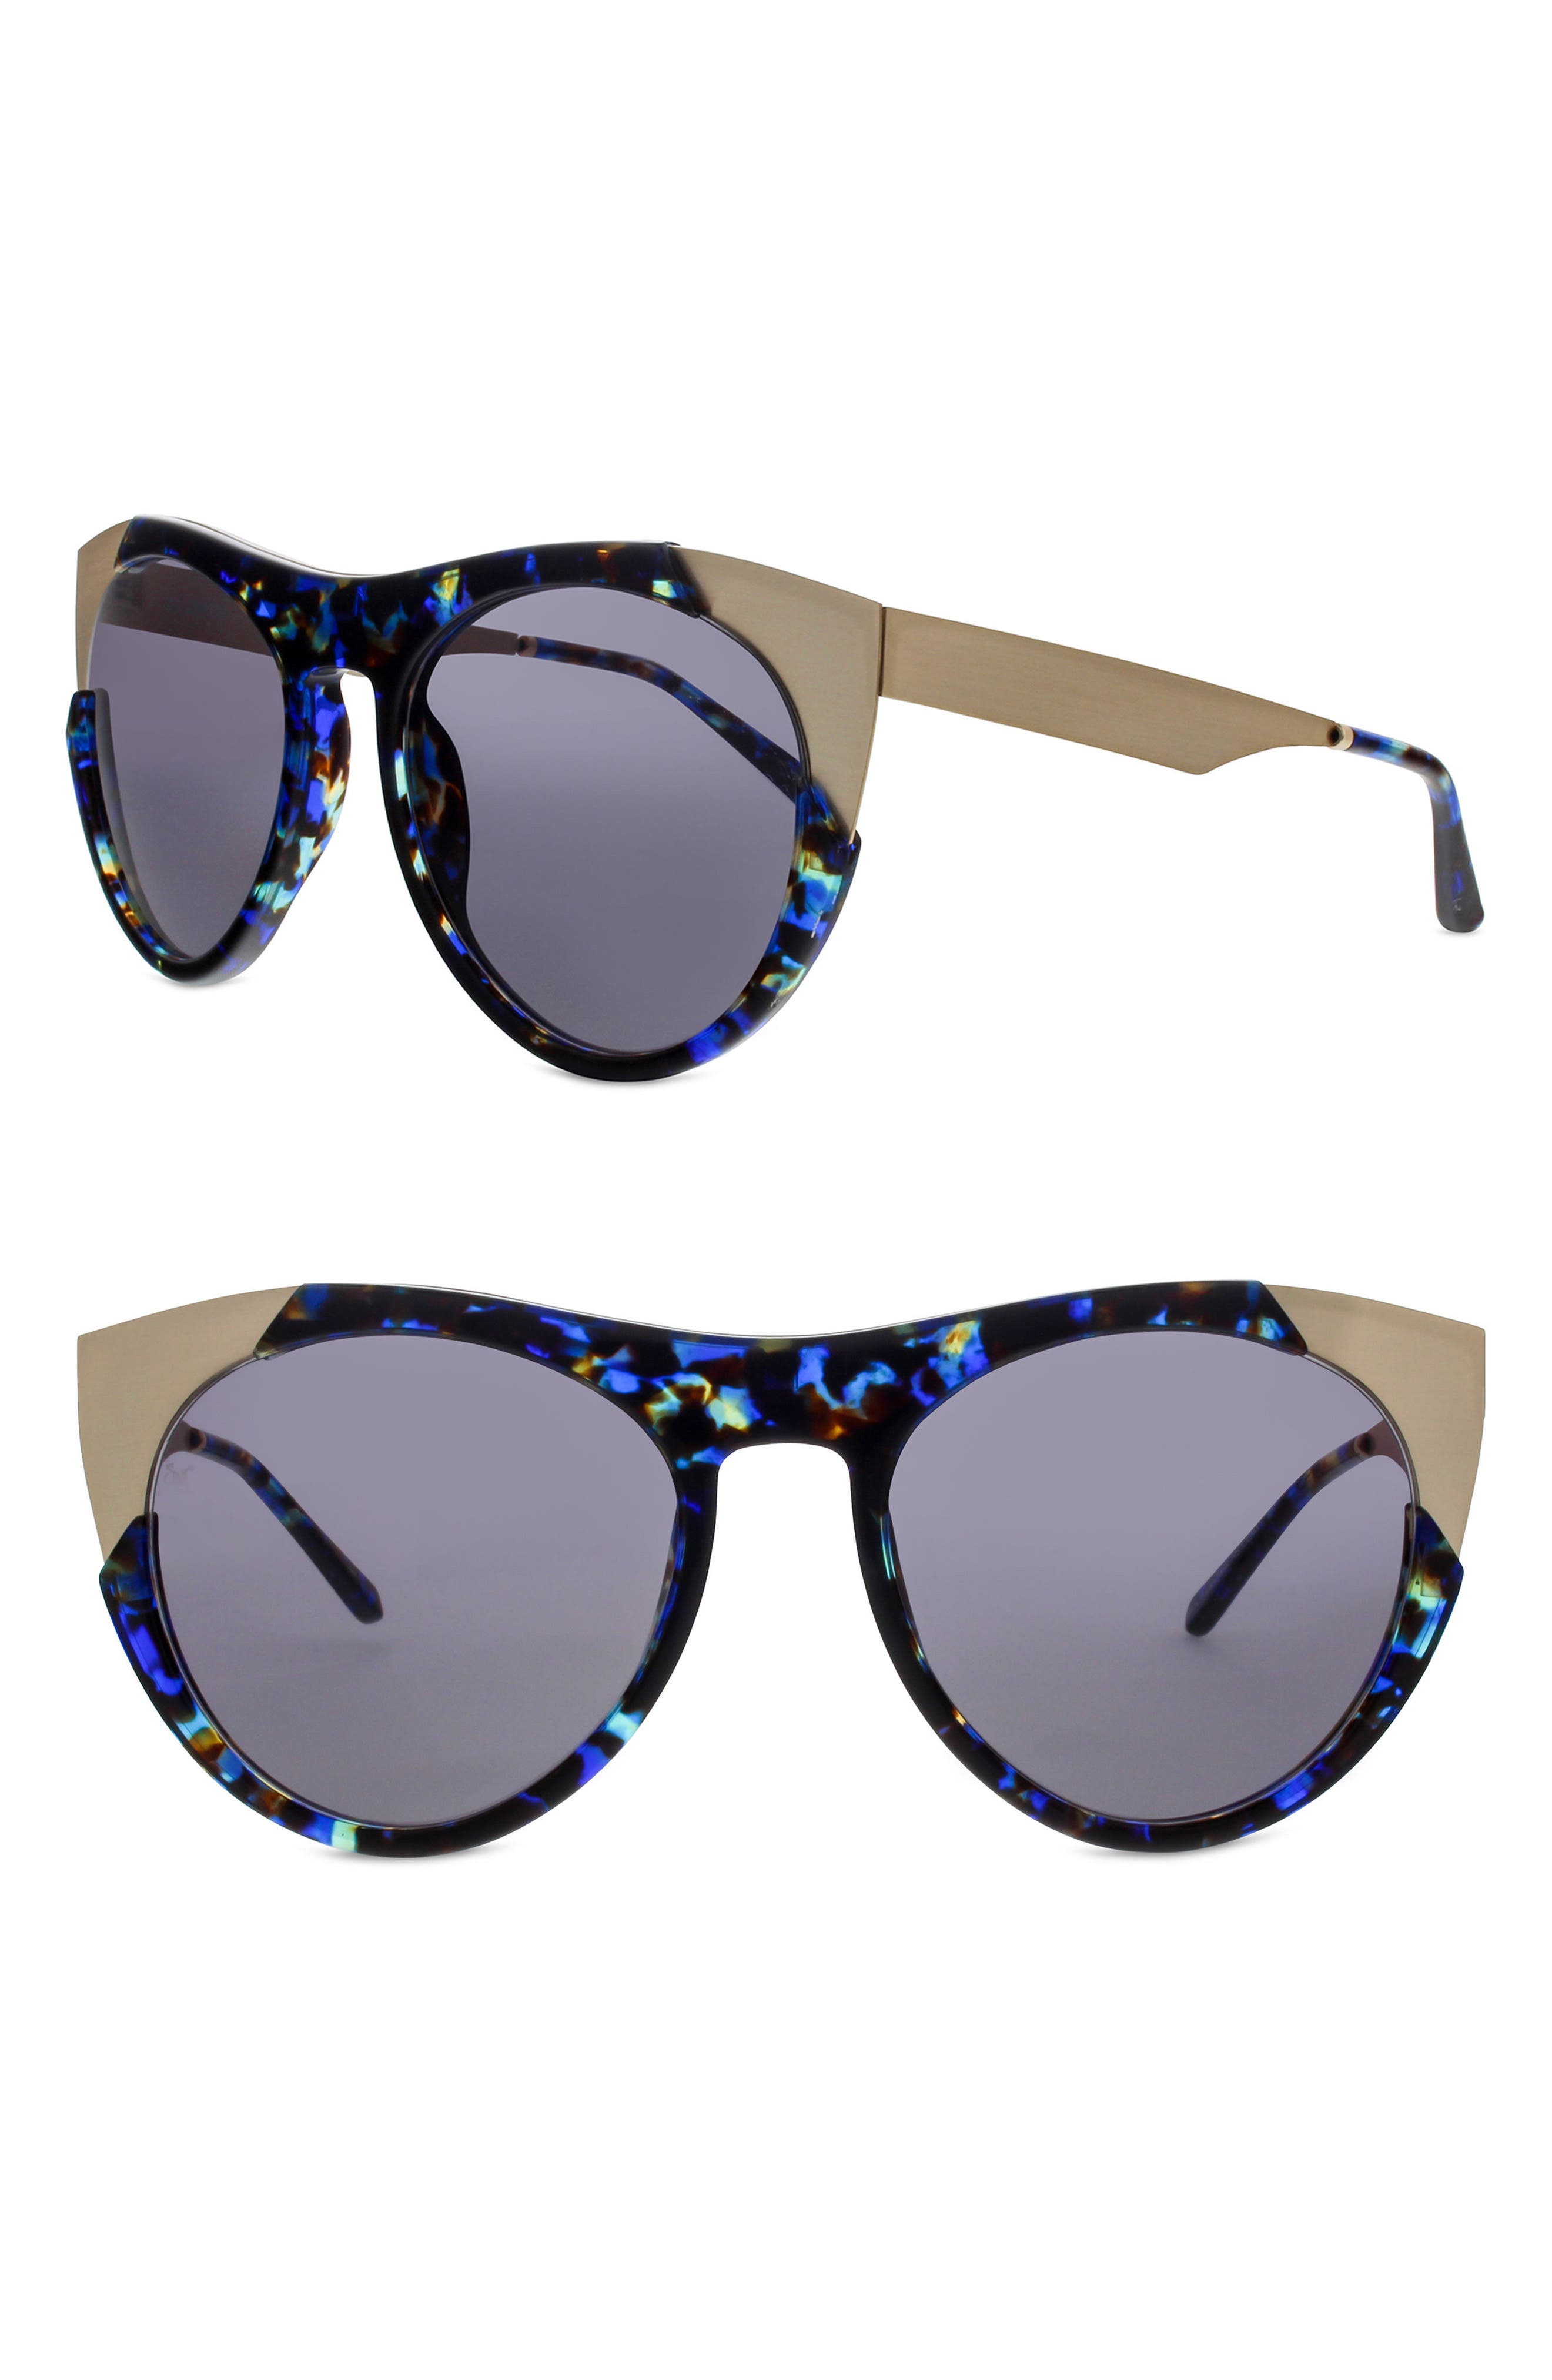 Zoubisou 53mm Cat Eye Sunglasses,                             Main thumbnail 1, color,                             Blue Glam/ Brushed Gold